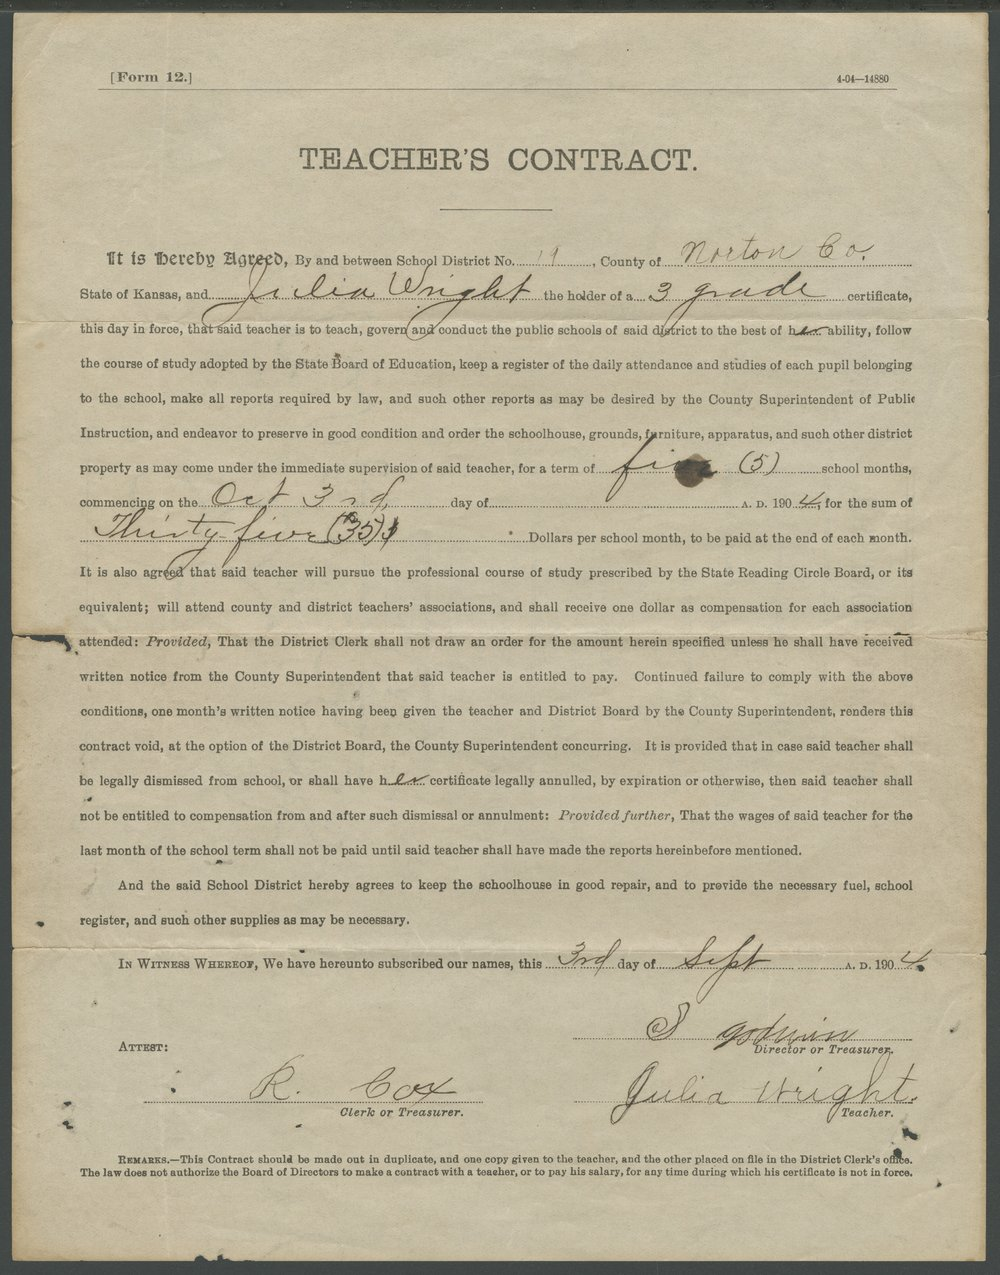 Julia Wright's teaching contract - 1